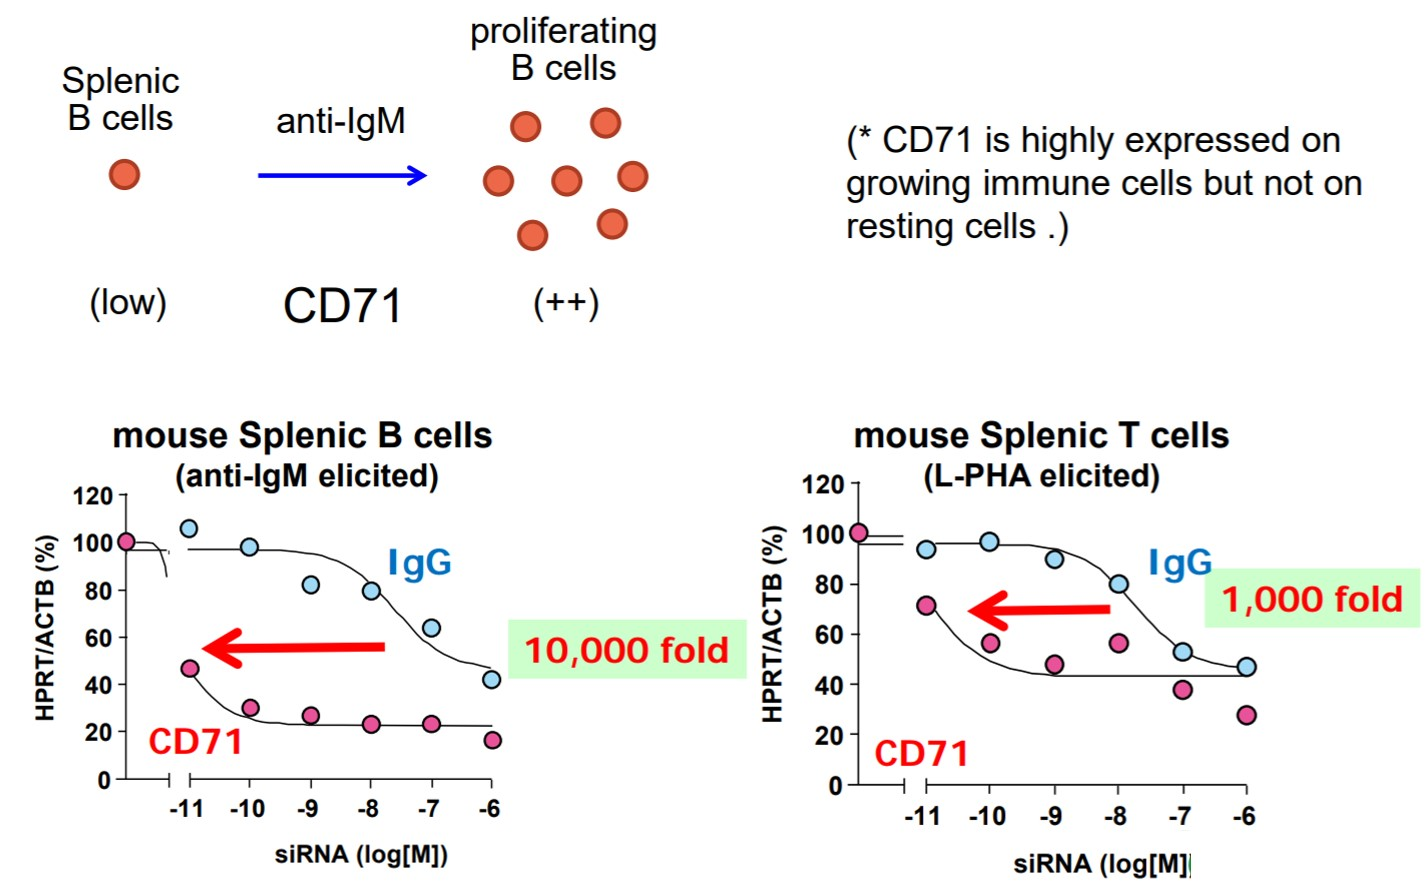 In vitro knock-down activities against CD71-positive cells